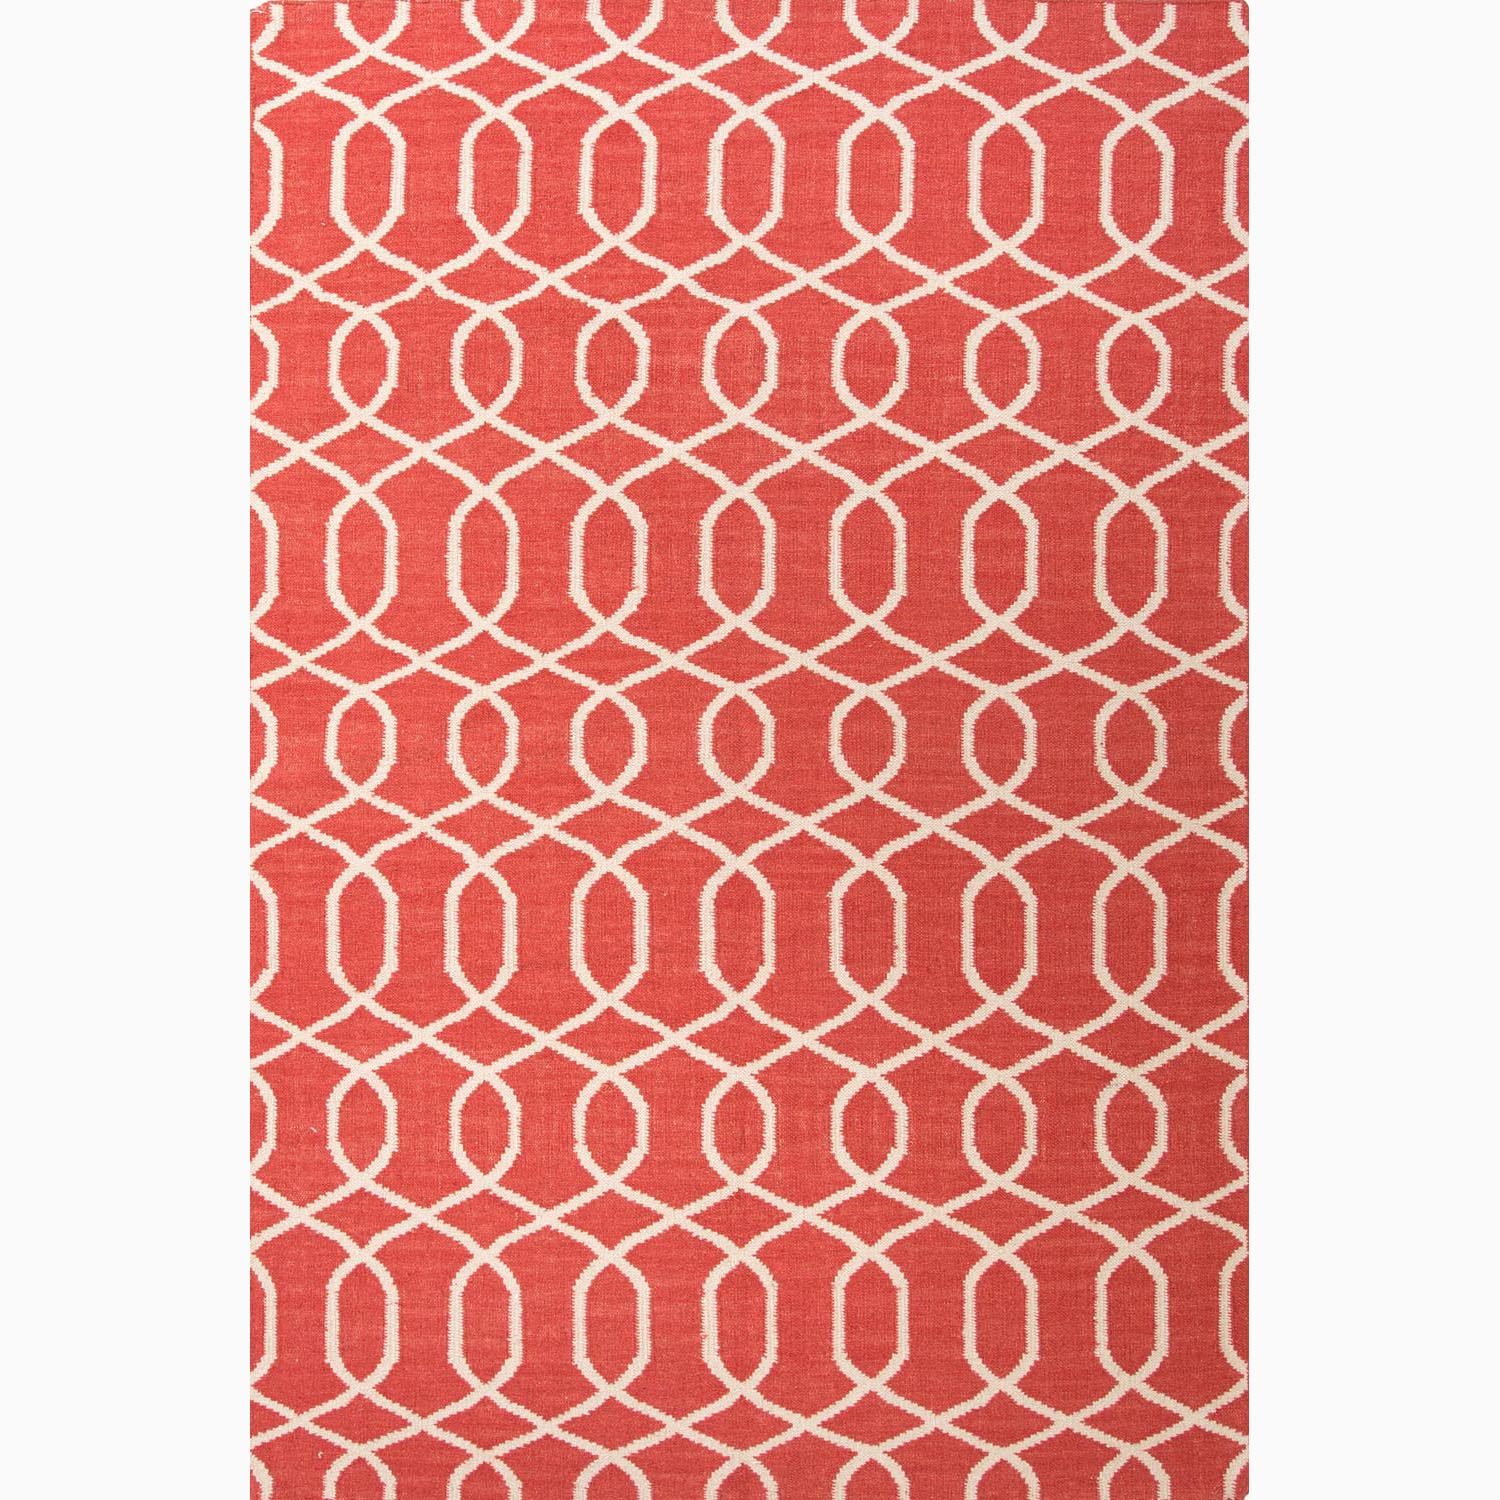 Handmade Geometric-pattern Contemporary Red/ Ivory Wool Rug (9' x 12')